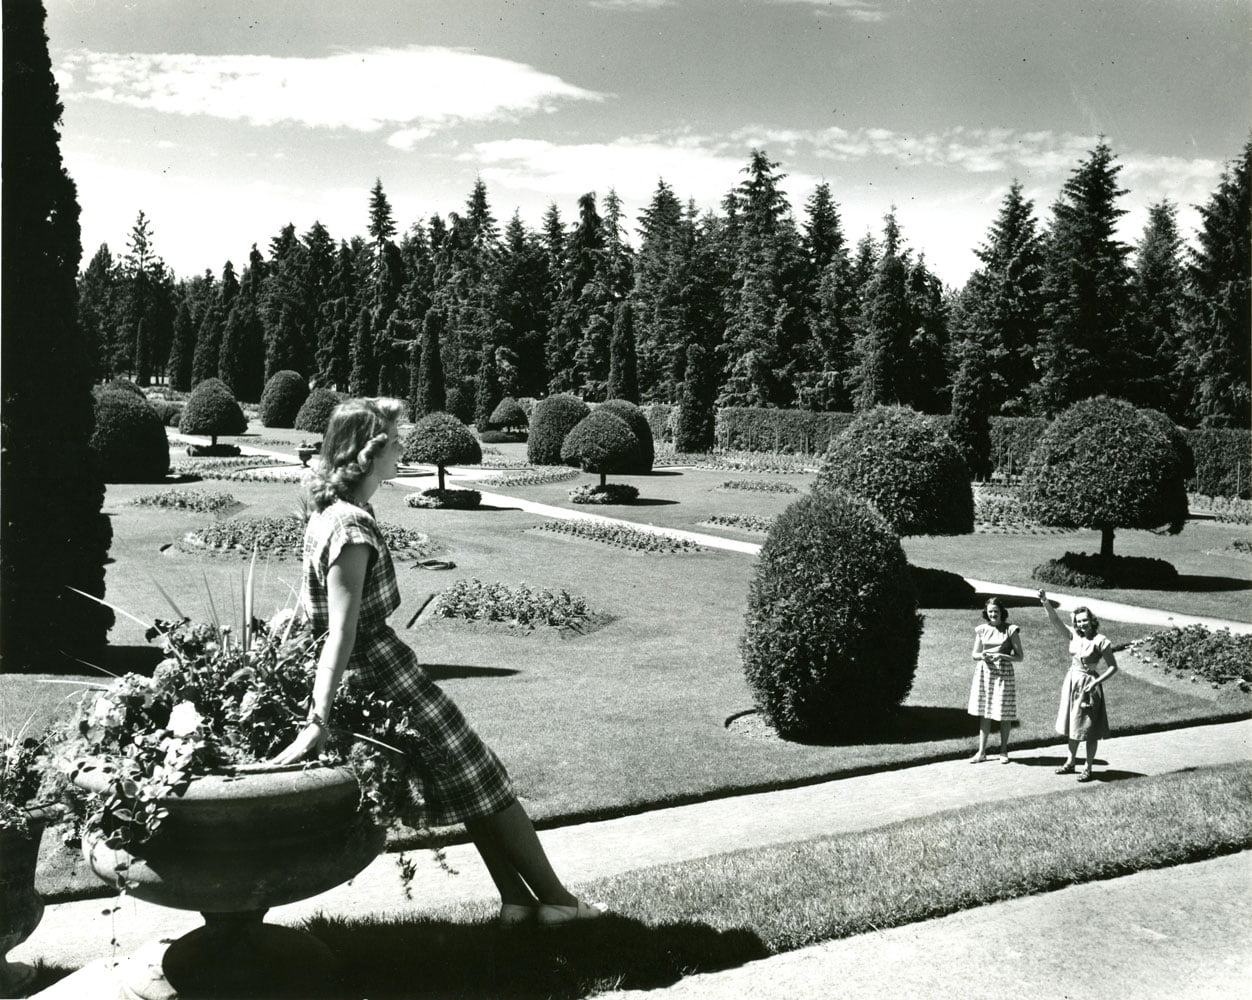 Title: Manito Park, Spokane, Date: 1940-1980, Photographer: Dyke, Walt, State Library Photograph Collection, 1851-1990, Washington State Archives, Digital Archives, http://www.digitalarchives.wa.gov, 04/04/2014.